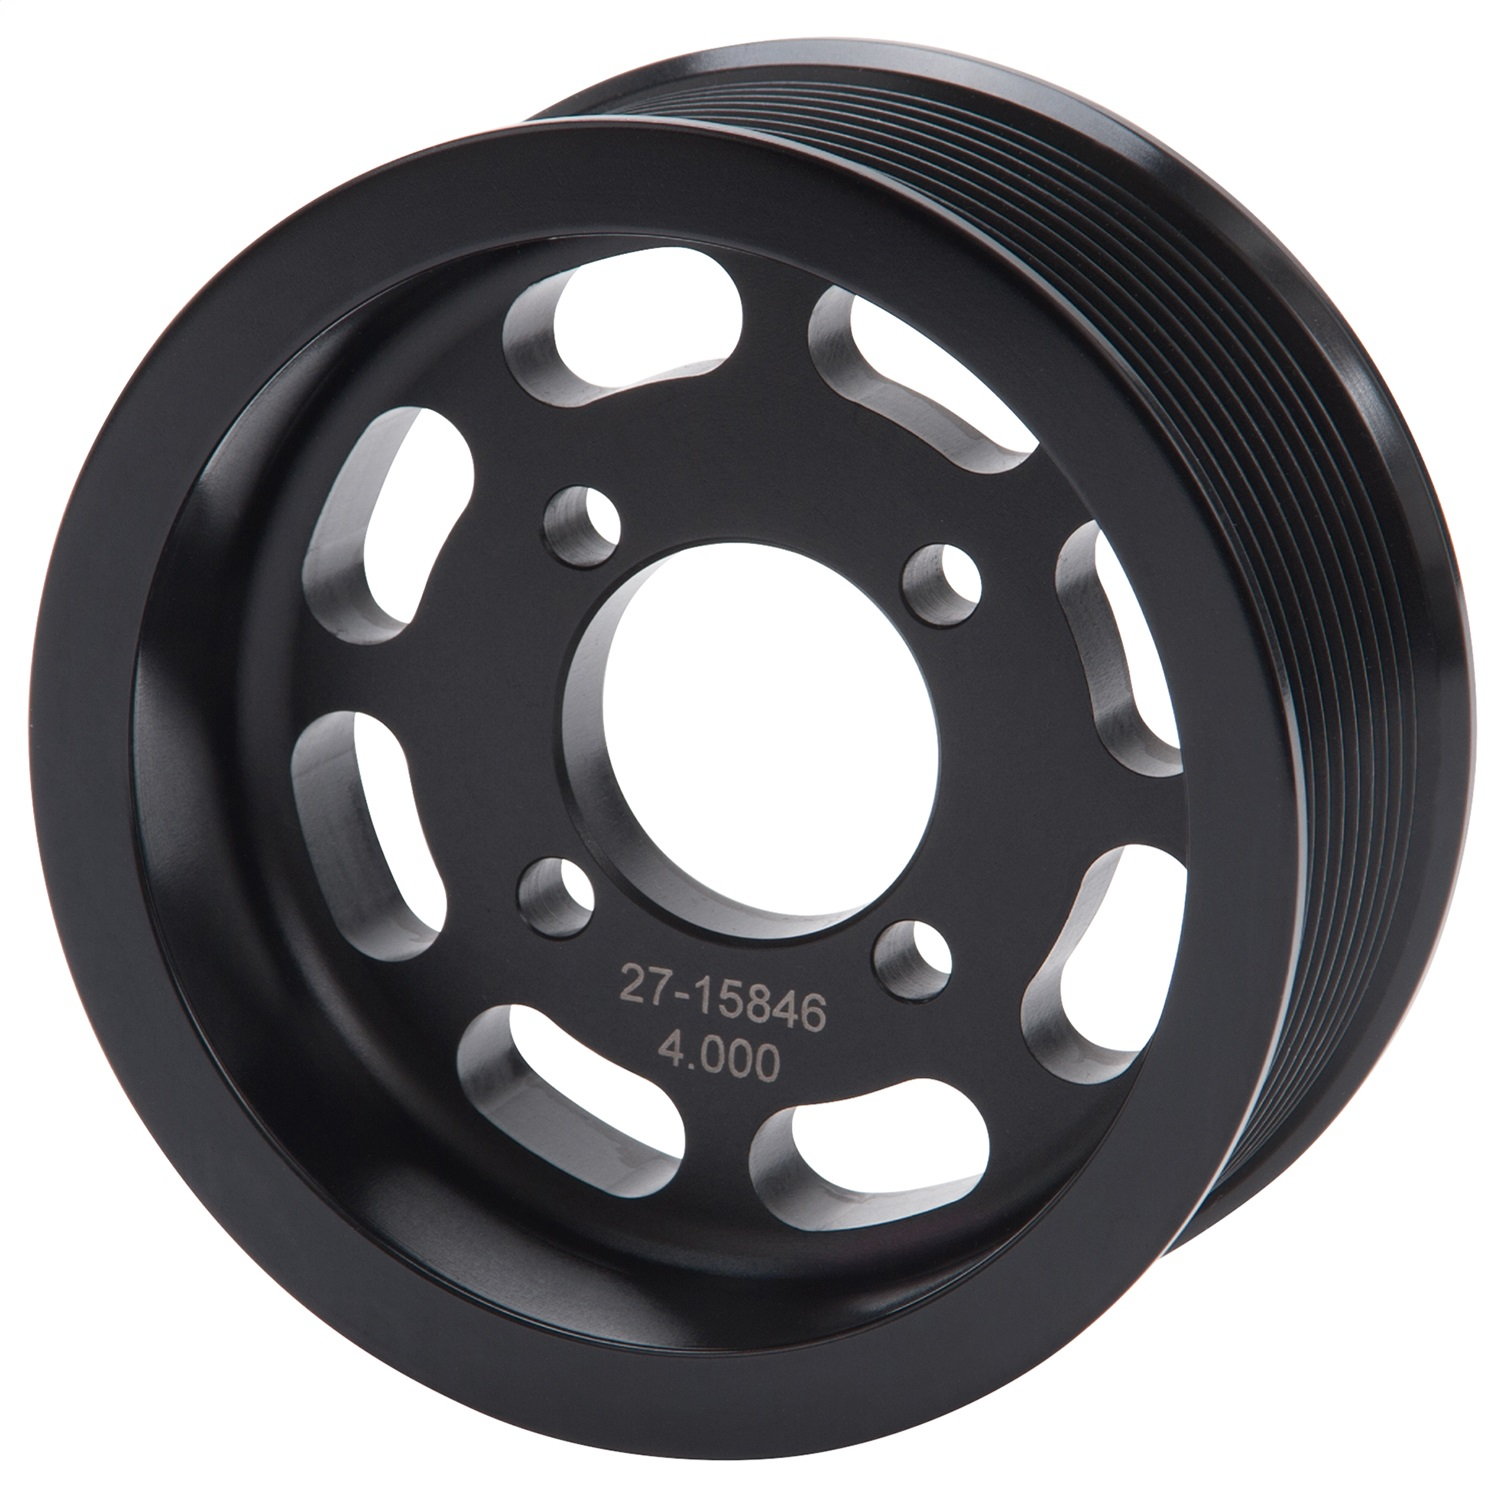 "Edelbrock 15846 PULLEY TVS 10 RIB 4.000"" BLK ANODIZED"